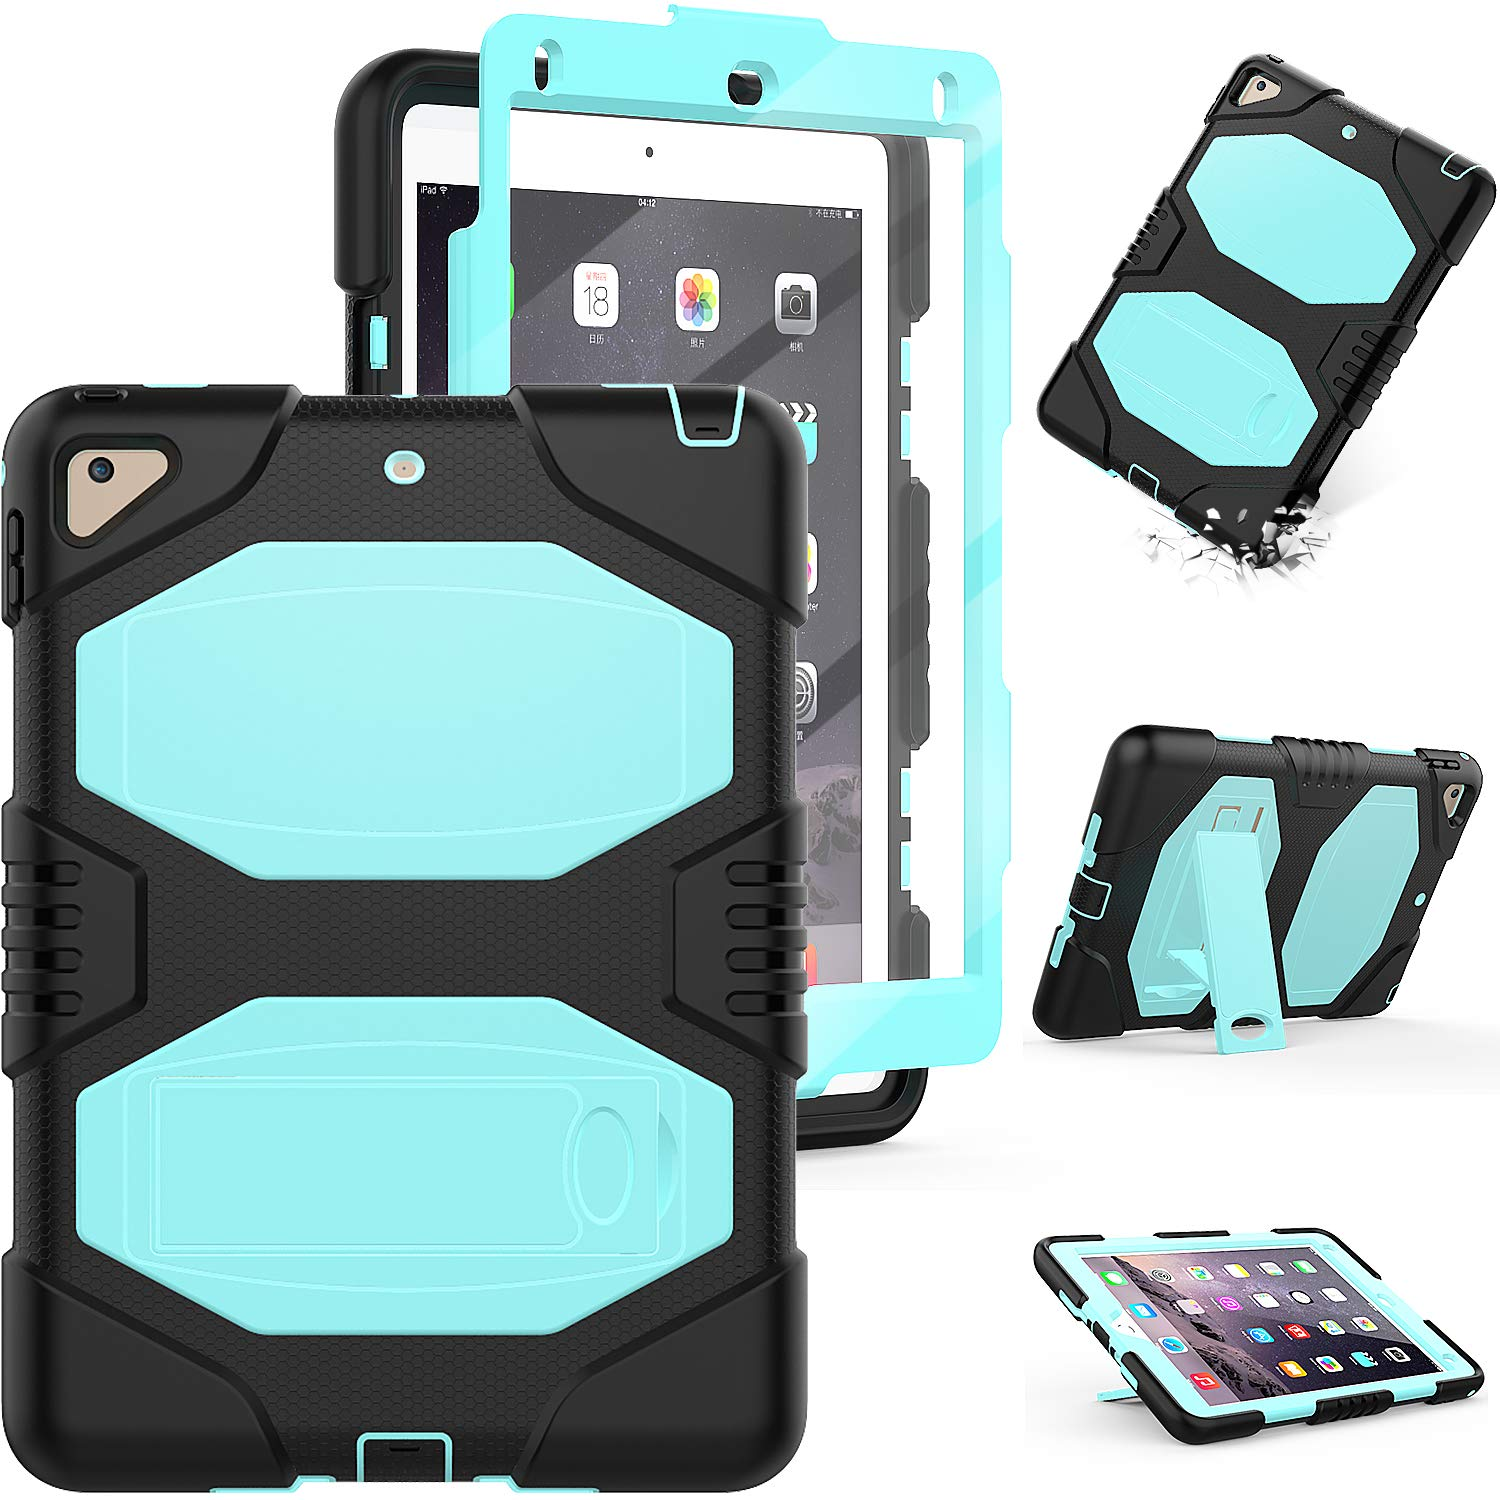 iPad 9.7 5th 6th Generation Case, iPad Pro 9.7 Case,iPad Air 2 Case, 3 Layer Full Body Heavy Duty Shockproof Rugged Protective Case with Stand for iPad 9.7 5th/6th A1893/A1954/A1822/A1823(SkyBlue)